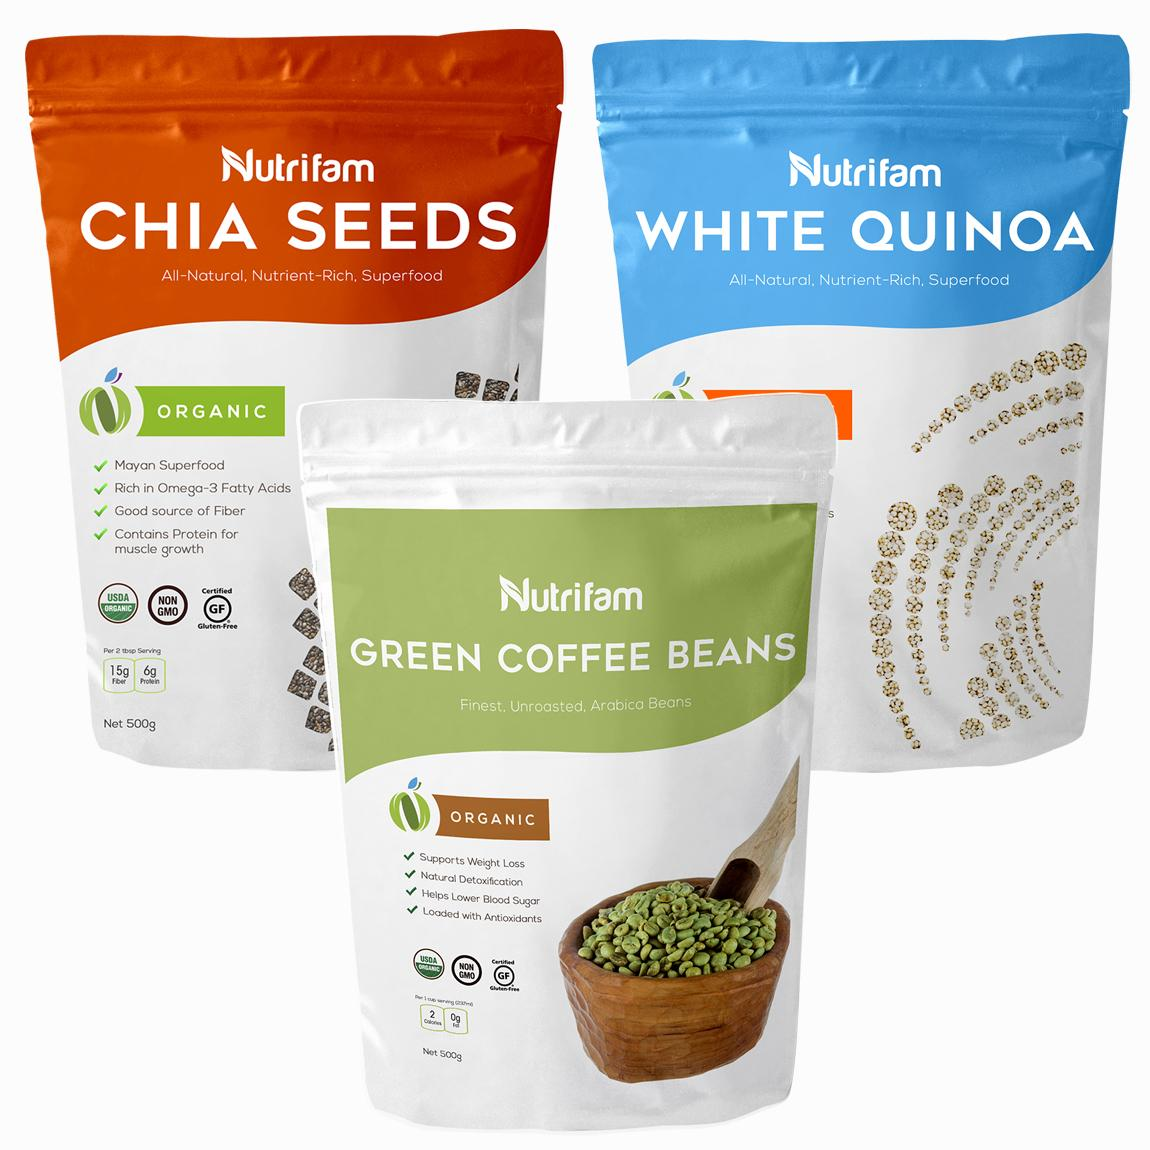 Rice Brands Food On Sale Prices Set Reviews In Pure Green Organic Long Grain 1 Kg Nutrifam Usda Chia Seeds 500g Coffee White Quinoa